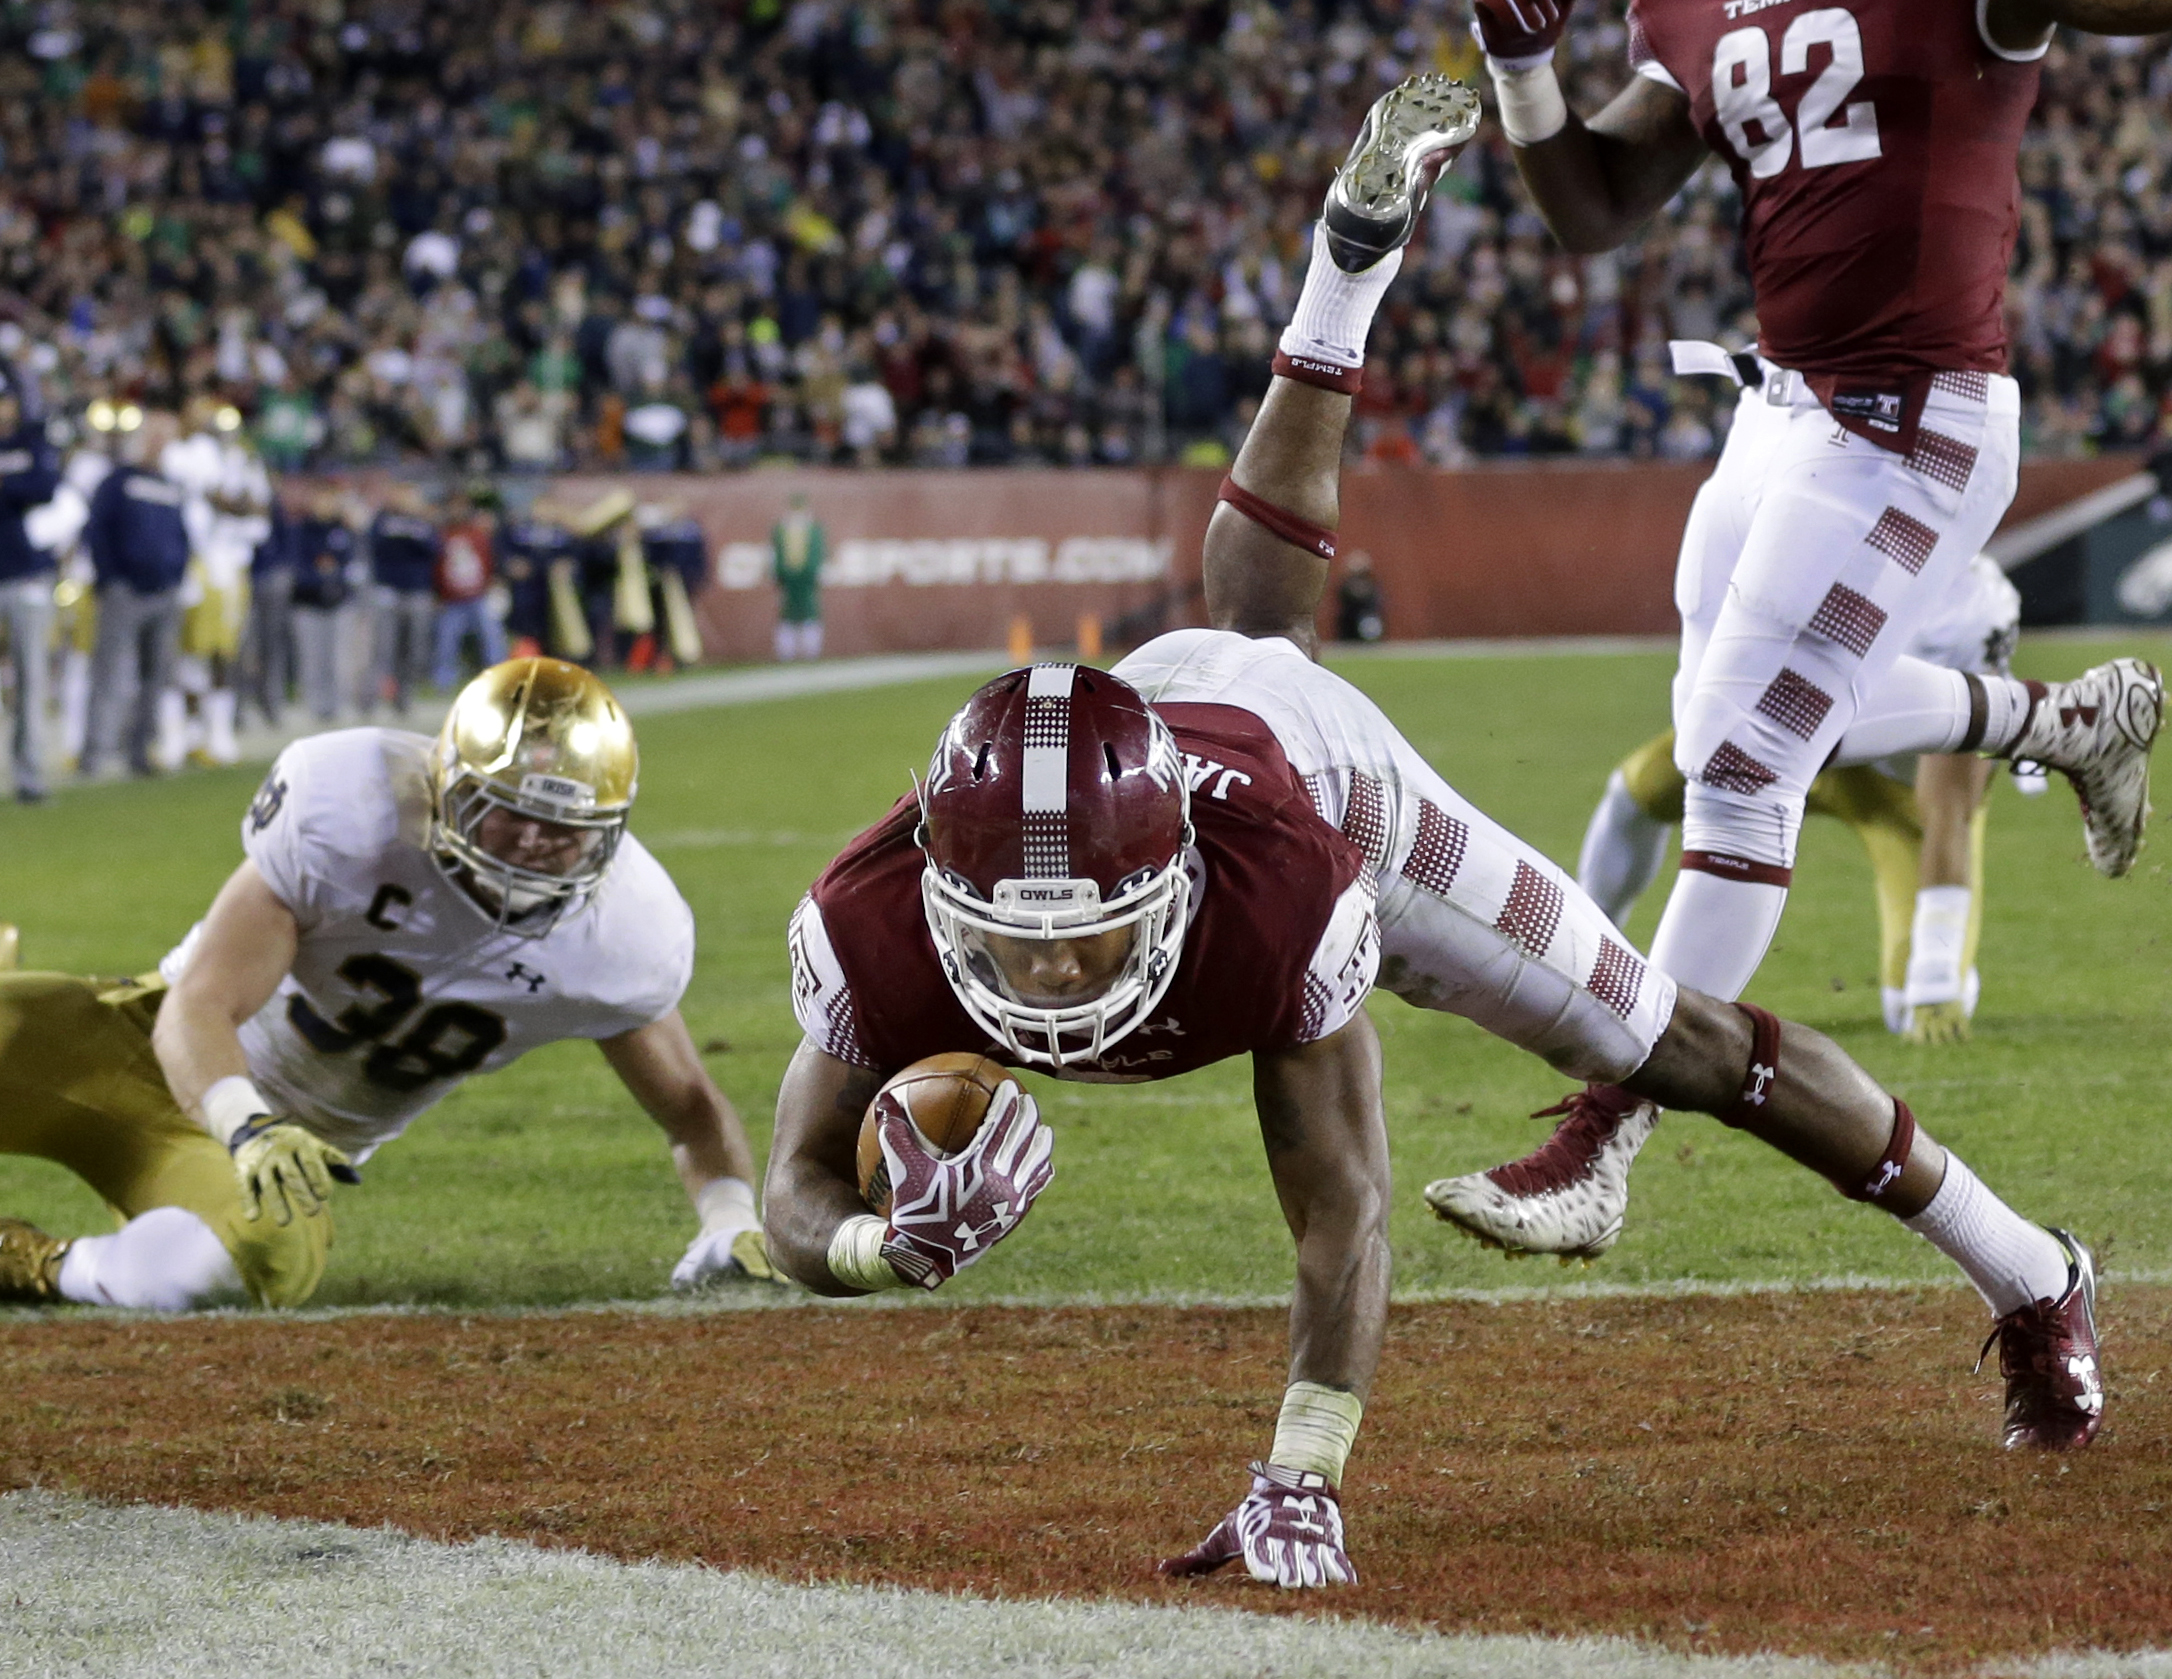 Temple running back Jahad Thomas (5) dives for a touchdown during the second half of an NCAA college football game against Notre Dame Saturday, Oct. 31, 2015, in Philadelphia. Notre Dame won 24-20. (AP Photo/Mel Evans)